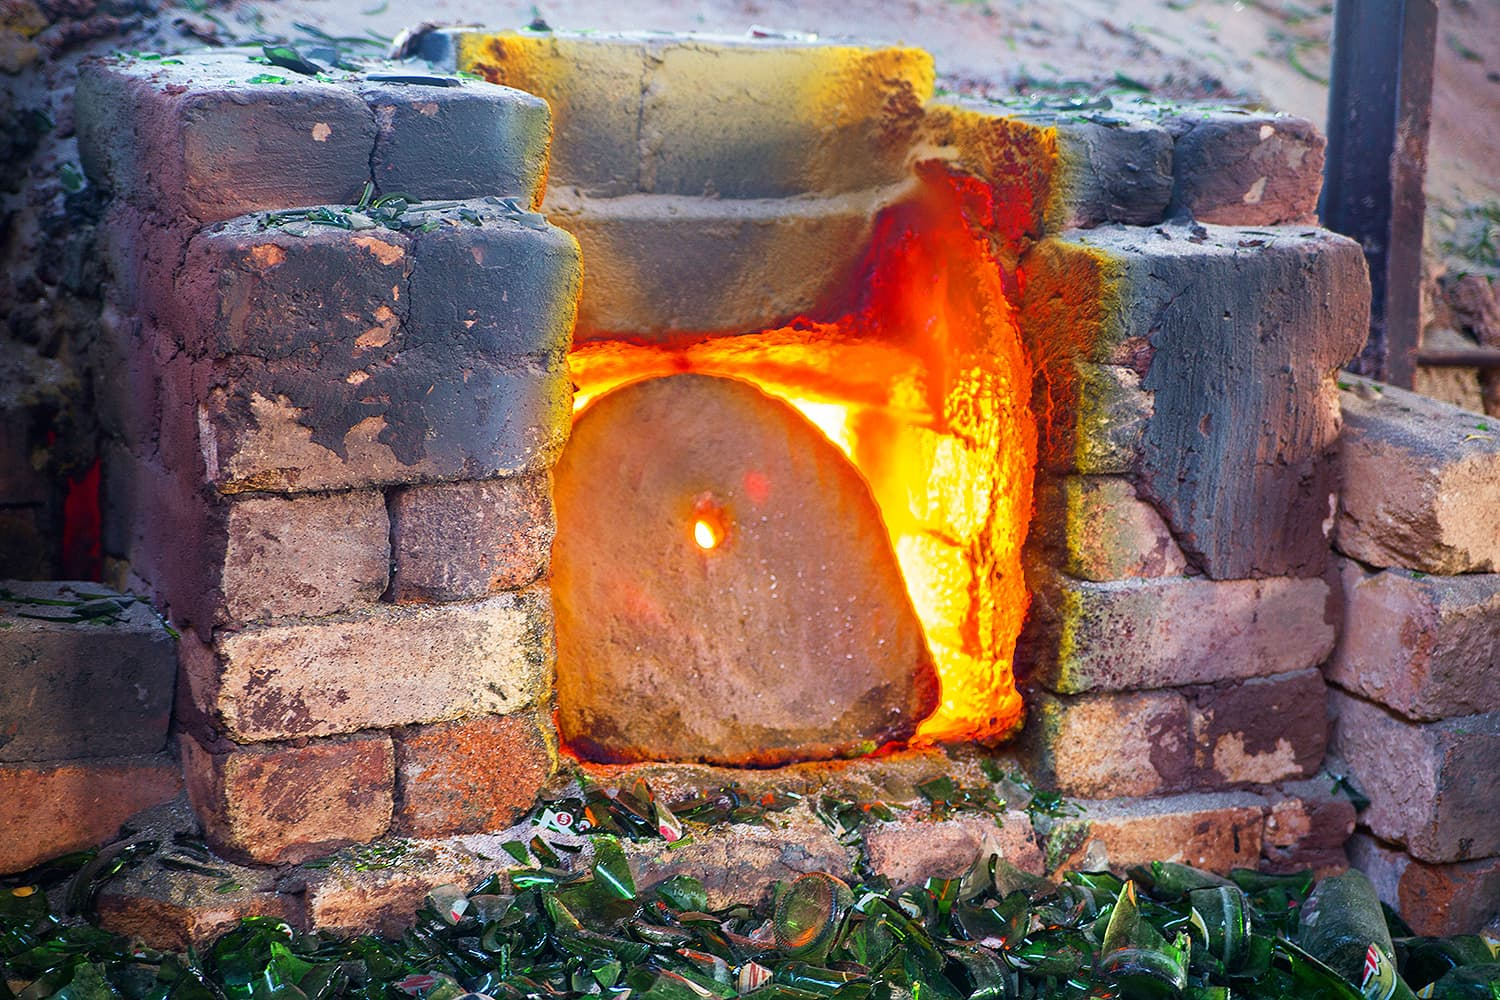 Furnaces to melt the glass during sadai.